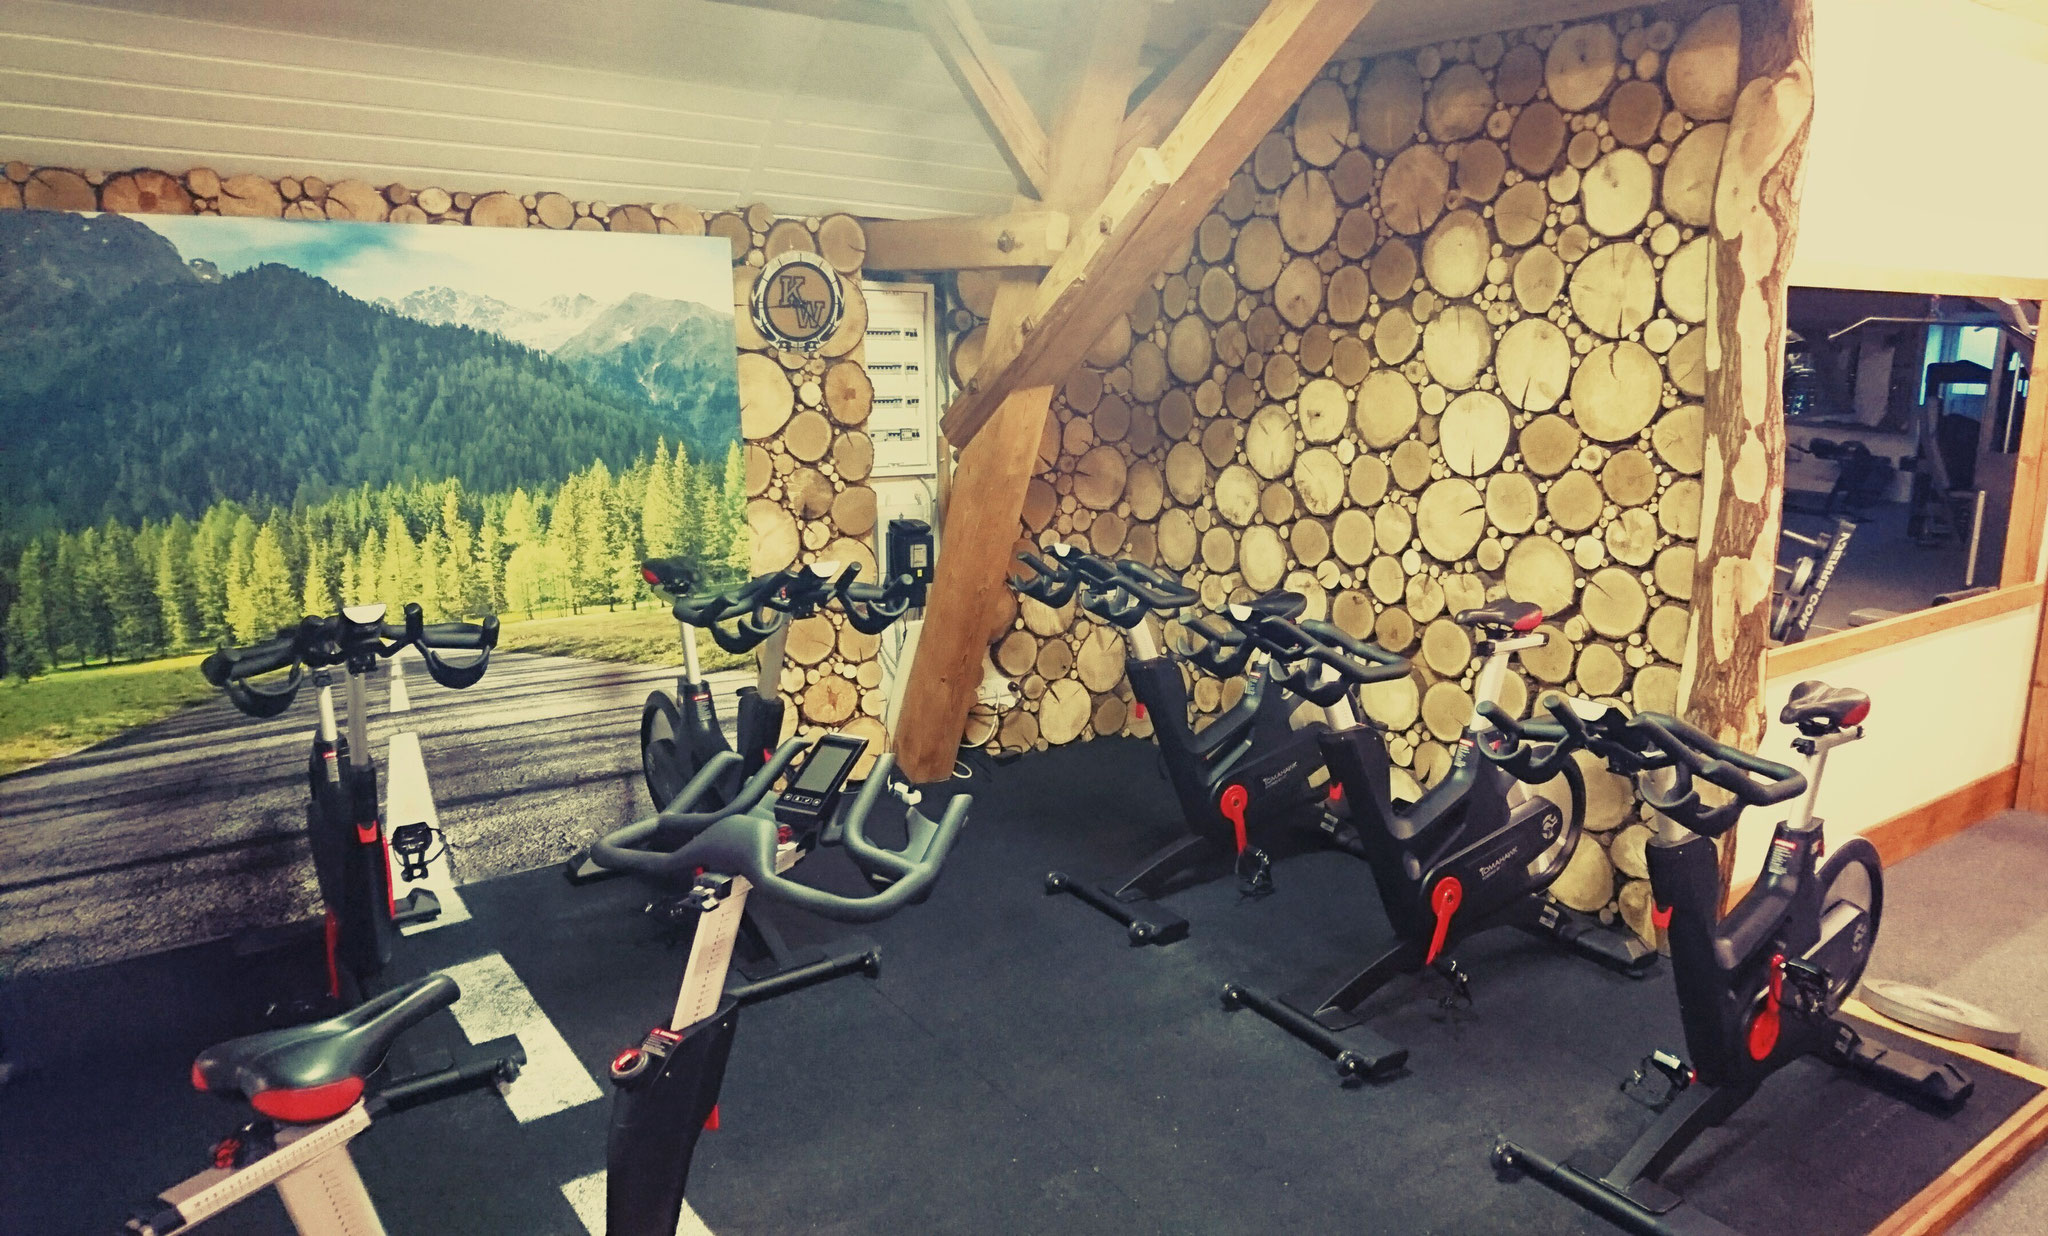 Unser Cycling-Bereich